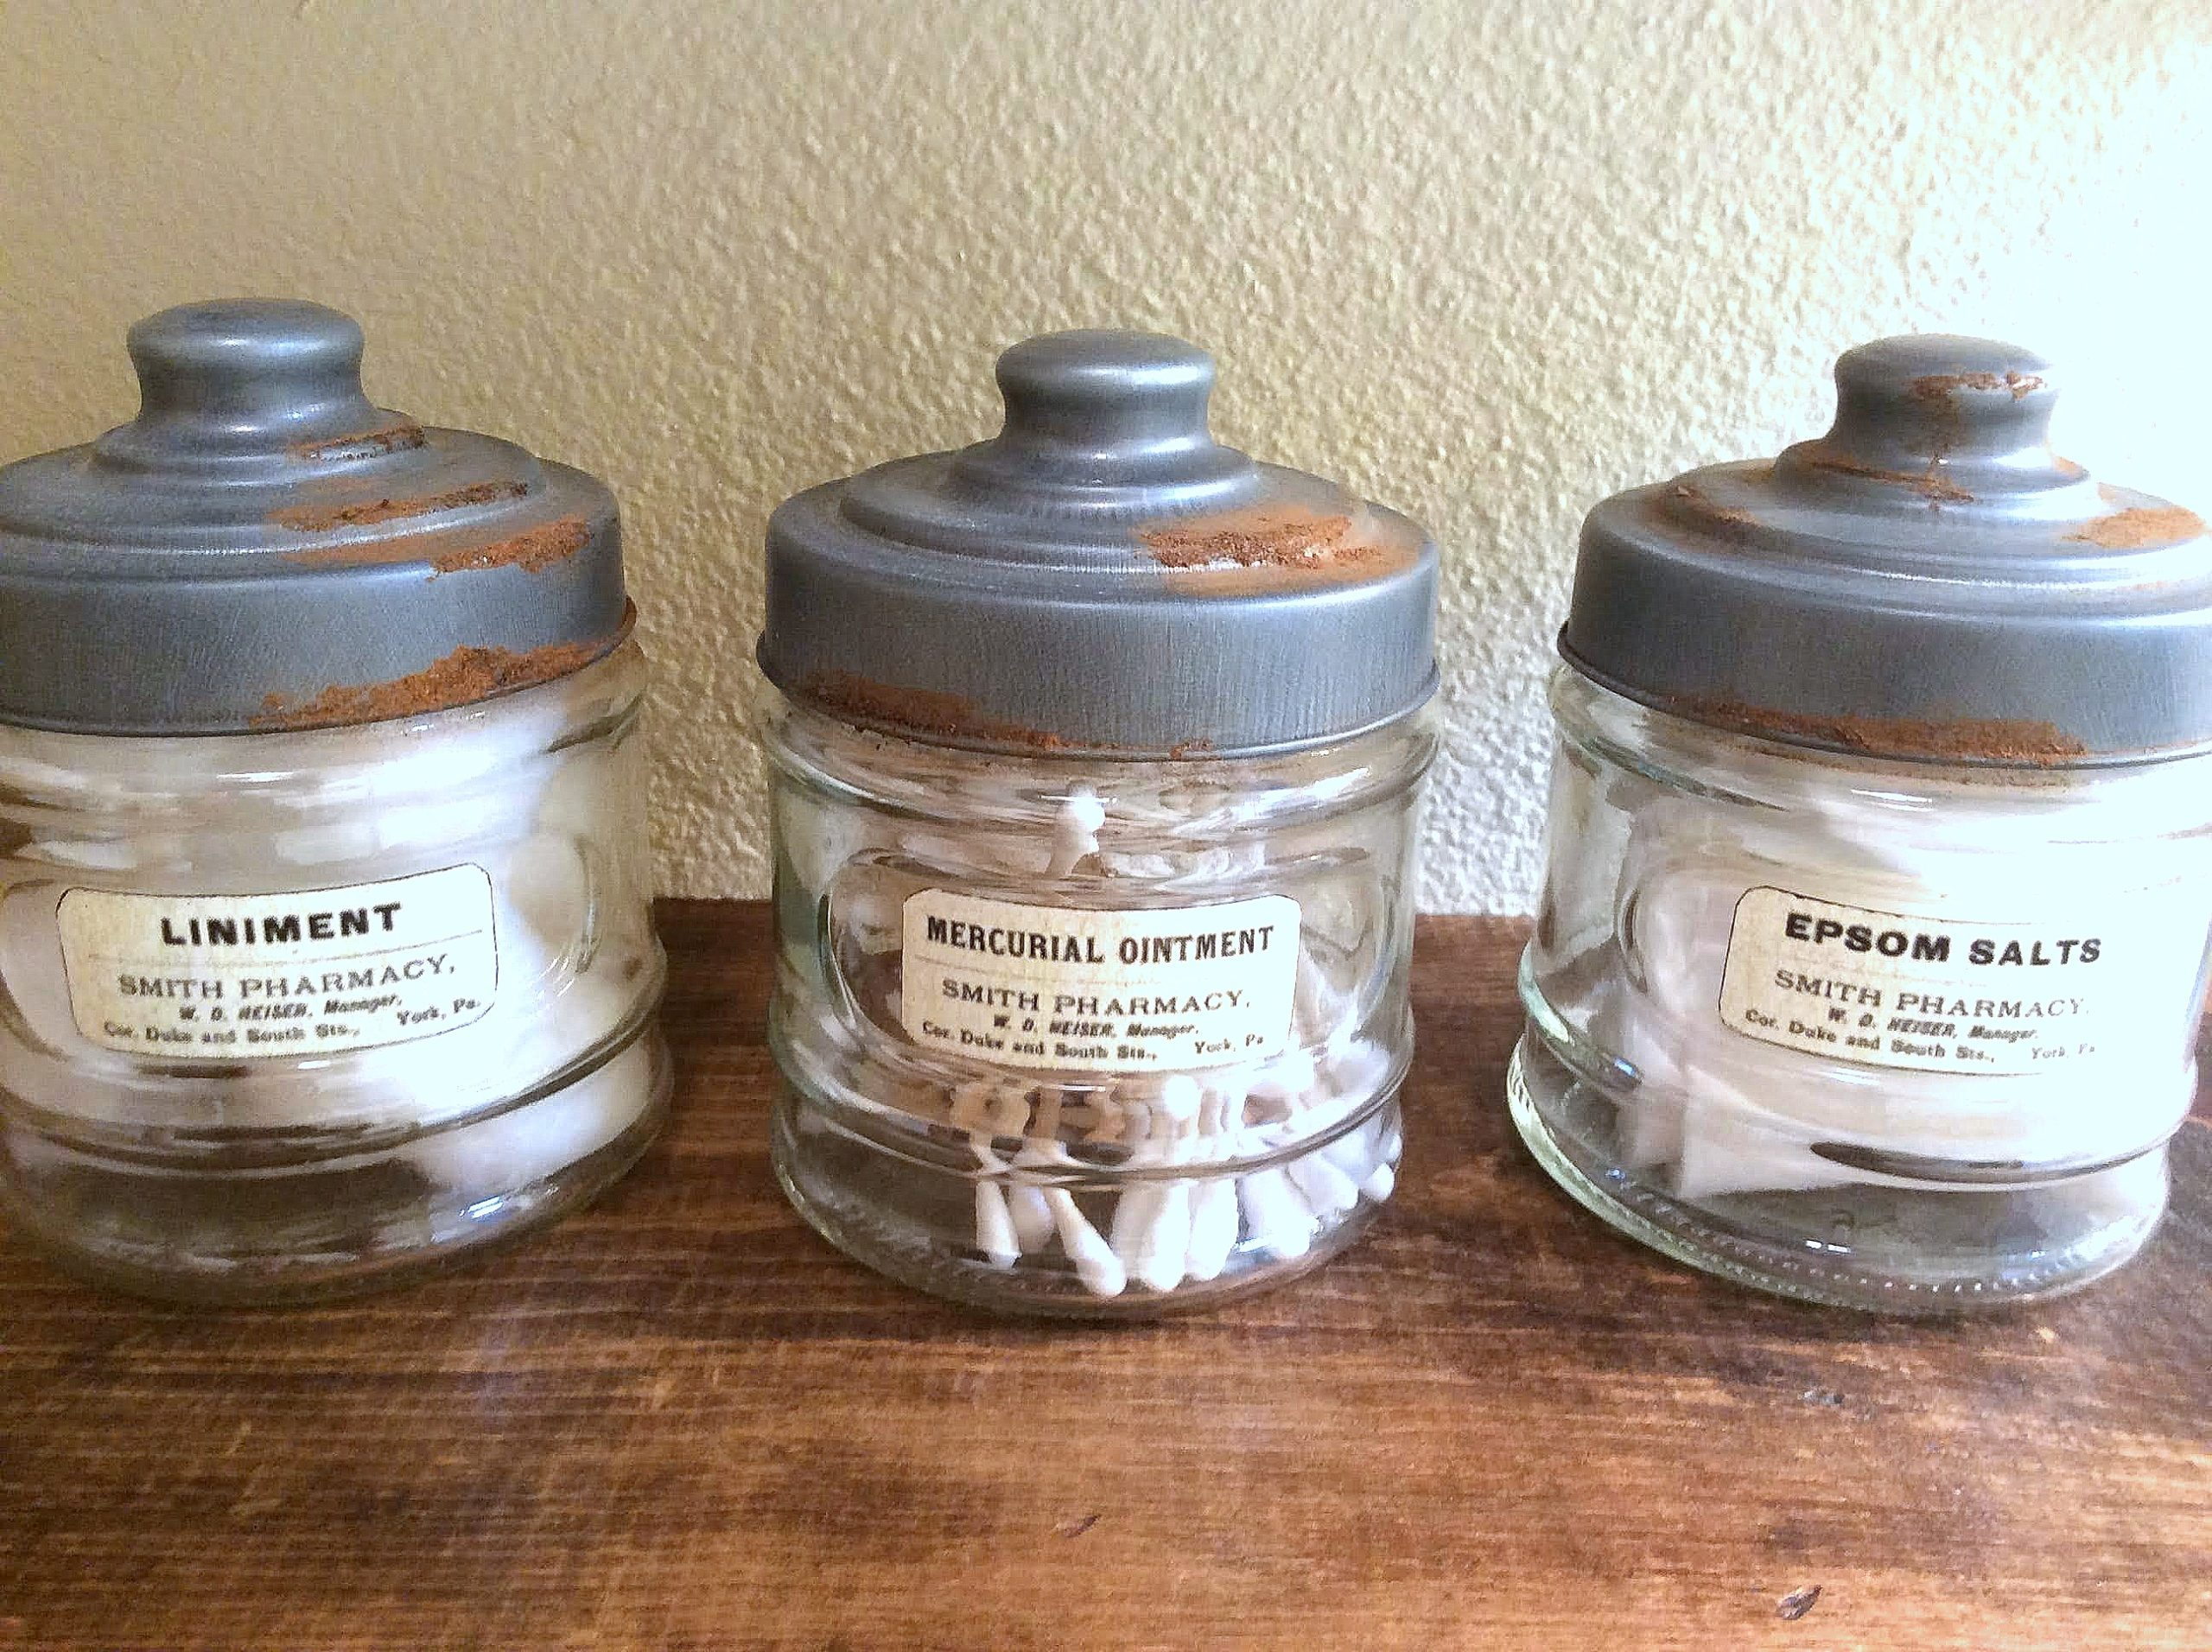 Creating rusty lids by Fresh Vintage By Lisa S, featured on DIY Salvaged Junk Projects 547 on Funky Junk!